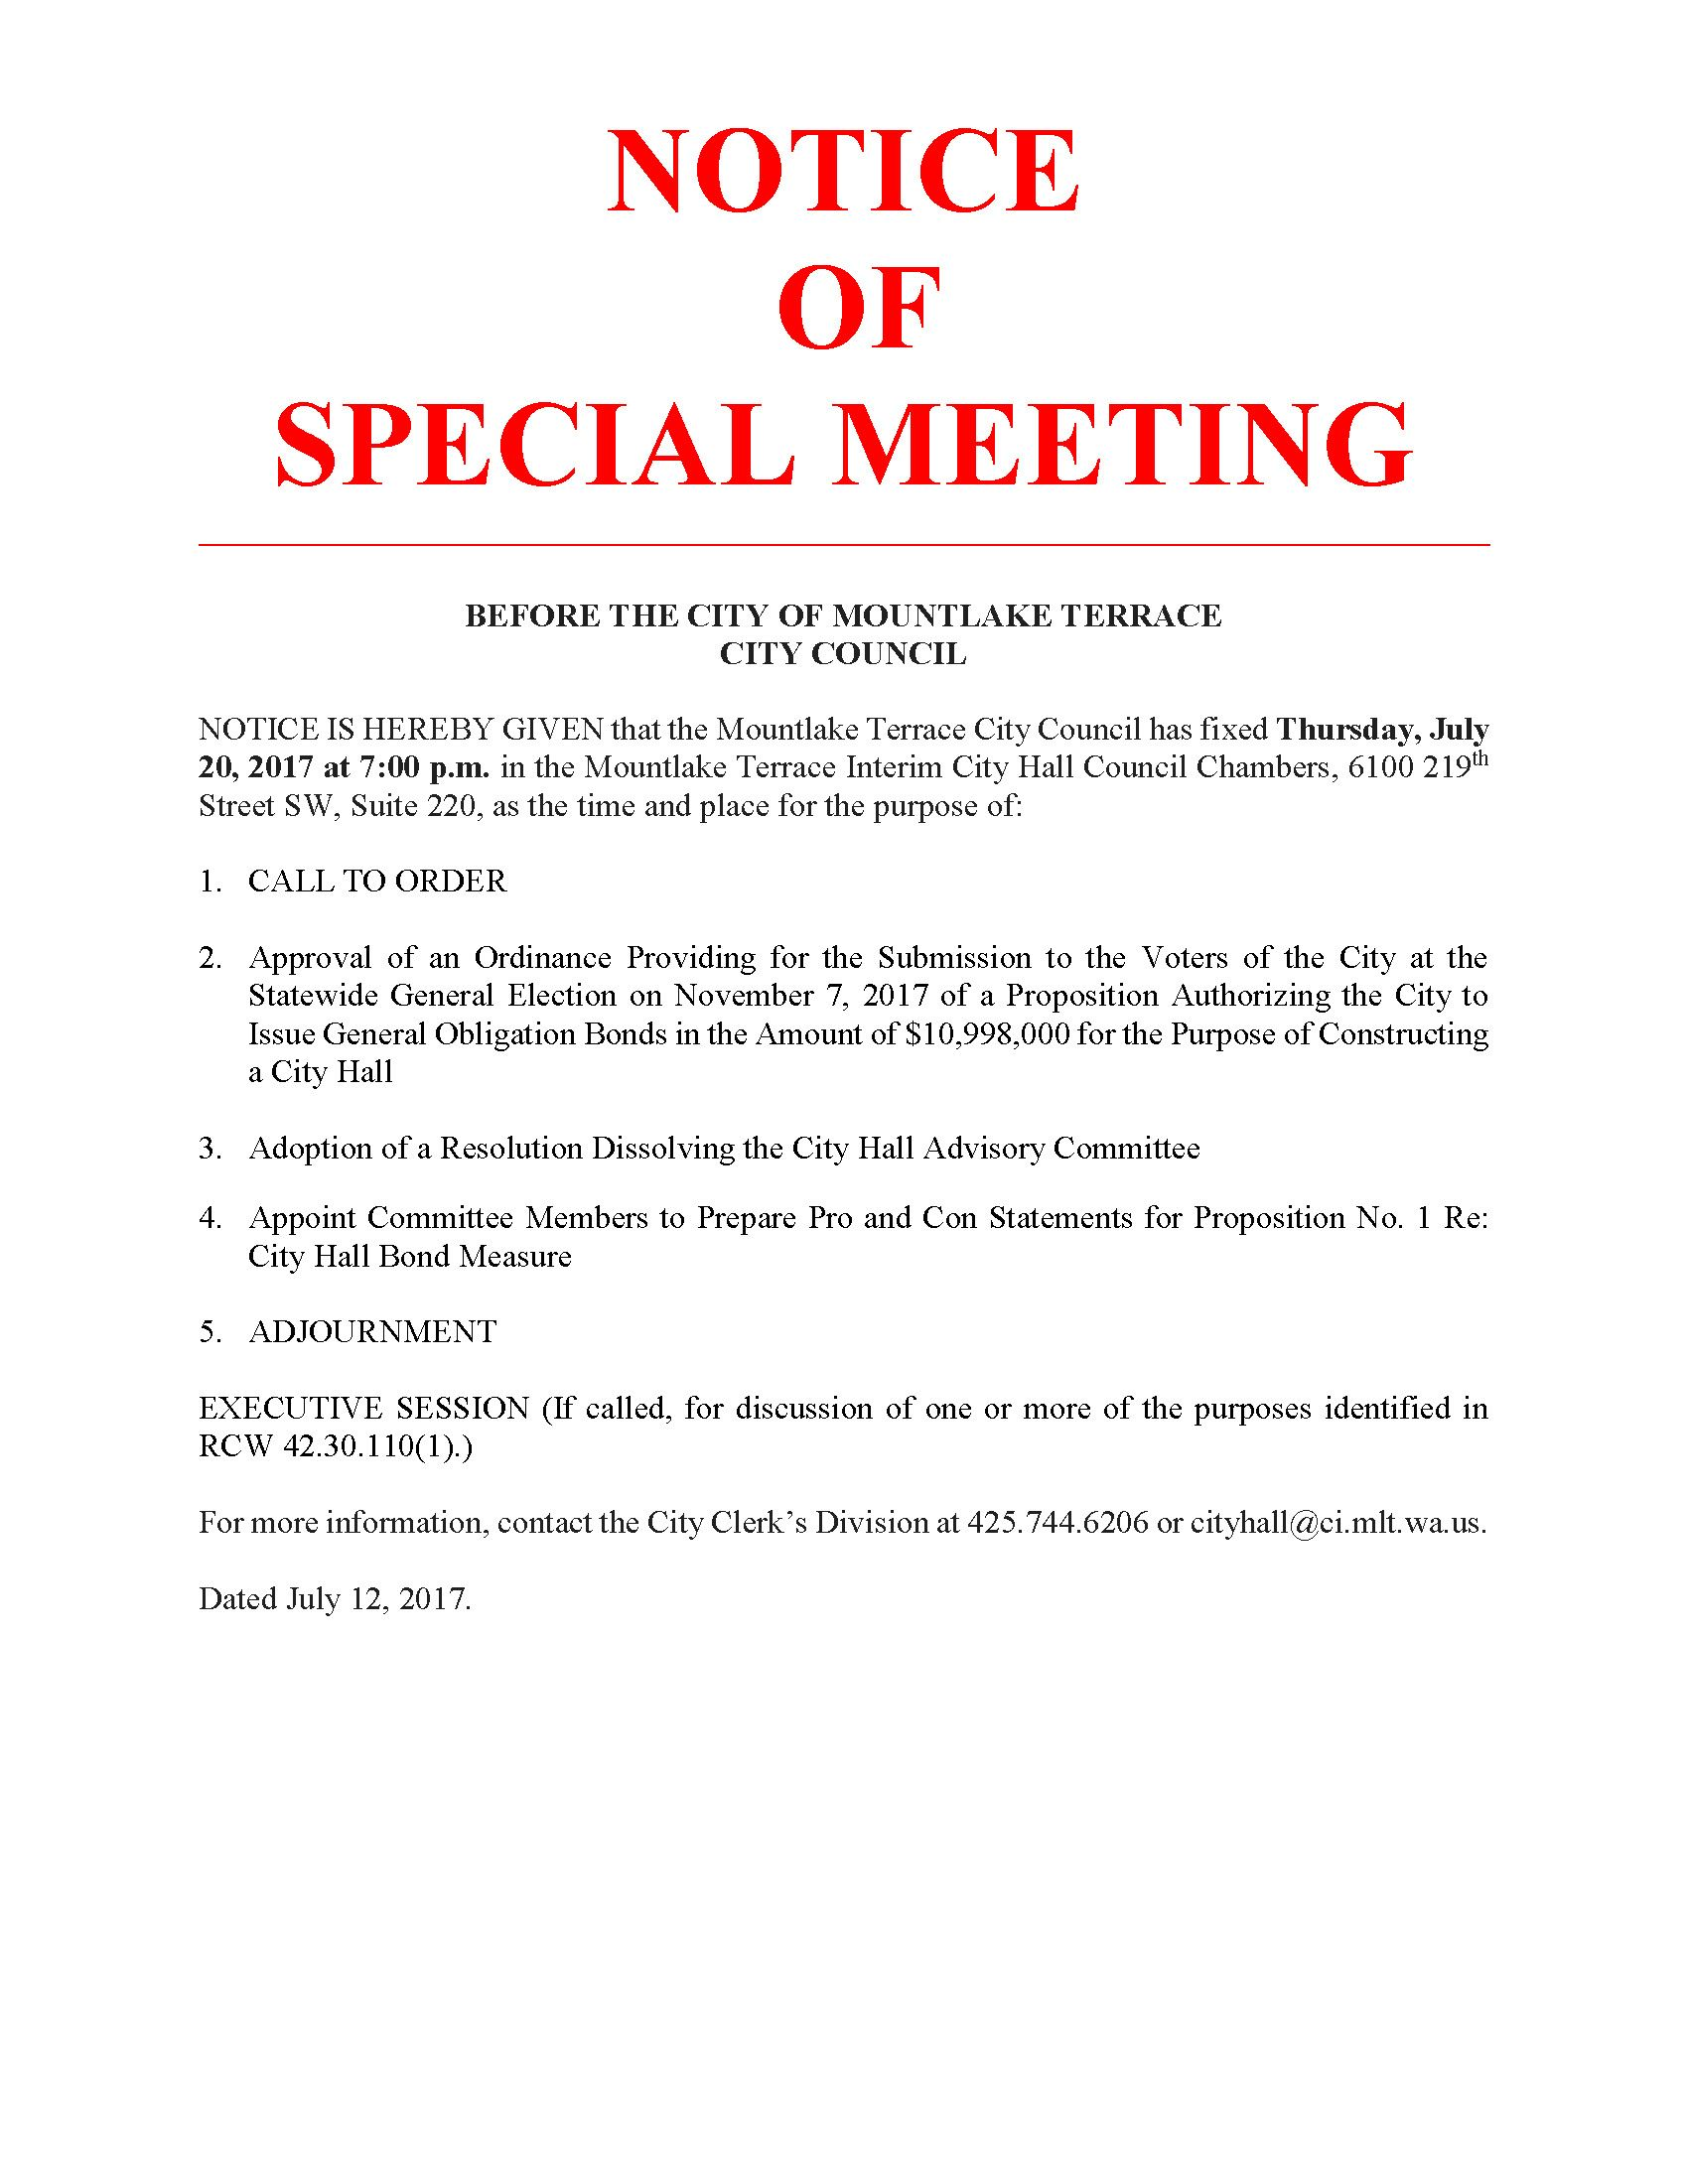 Special Meeting Notice, July 20, 2017